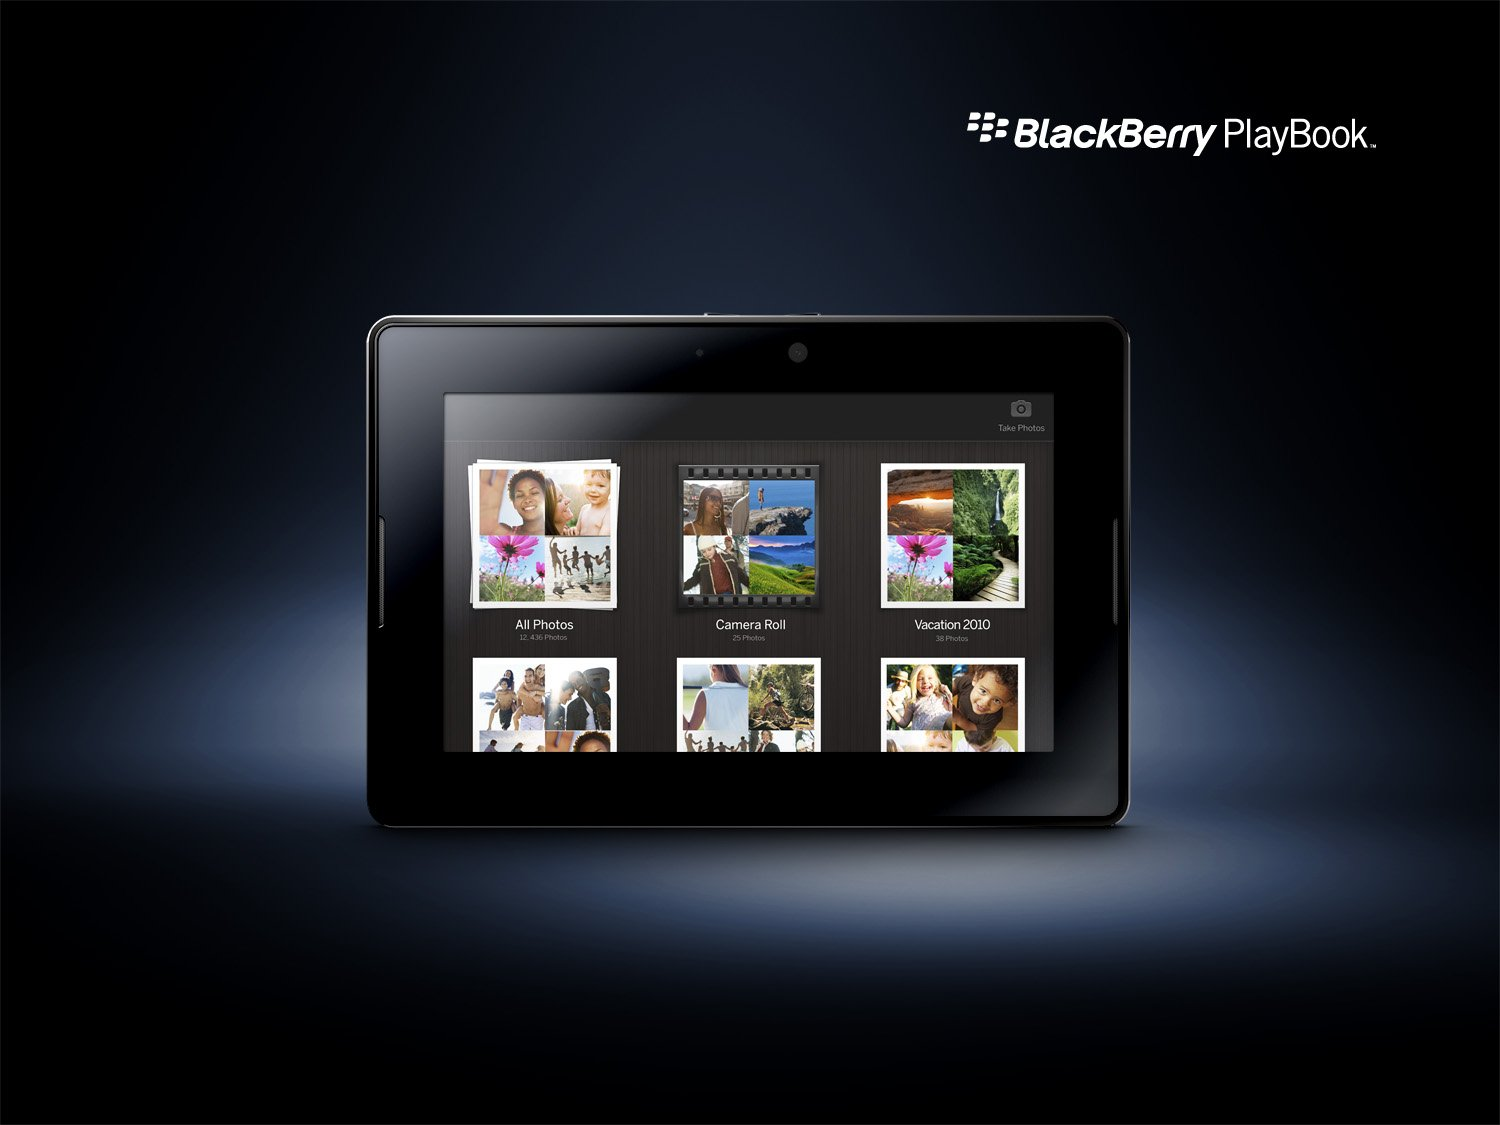 http://3.bp.blogspot.com/-KuDO1cbD0_Q/Ts8GBkUVUzI/AAAAAAAAD_8/Rb3EgydMhPU/s1600/BlackBerry-Playbook-software-screensa-3.jpg